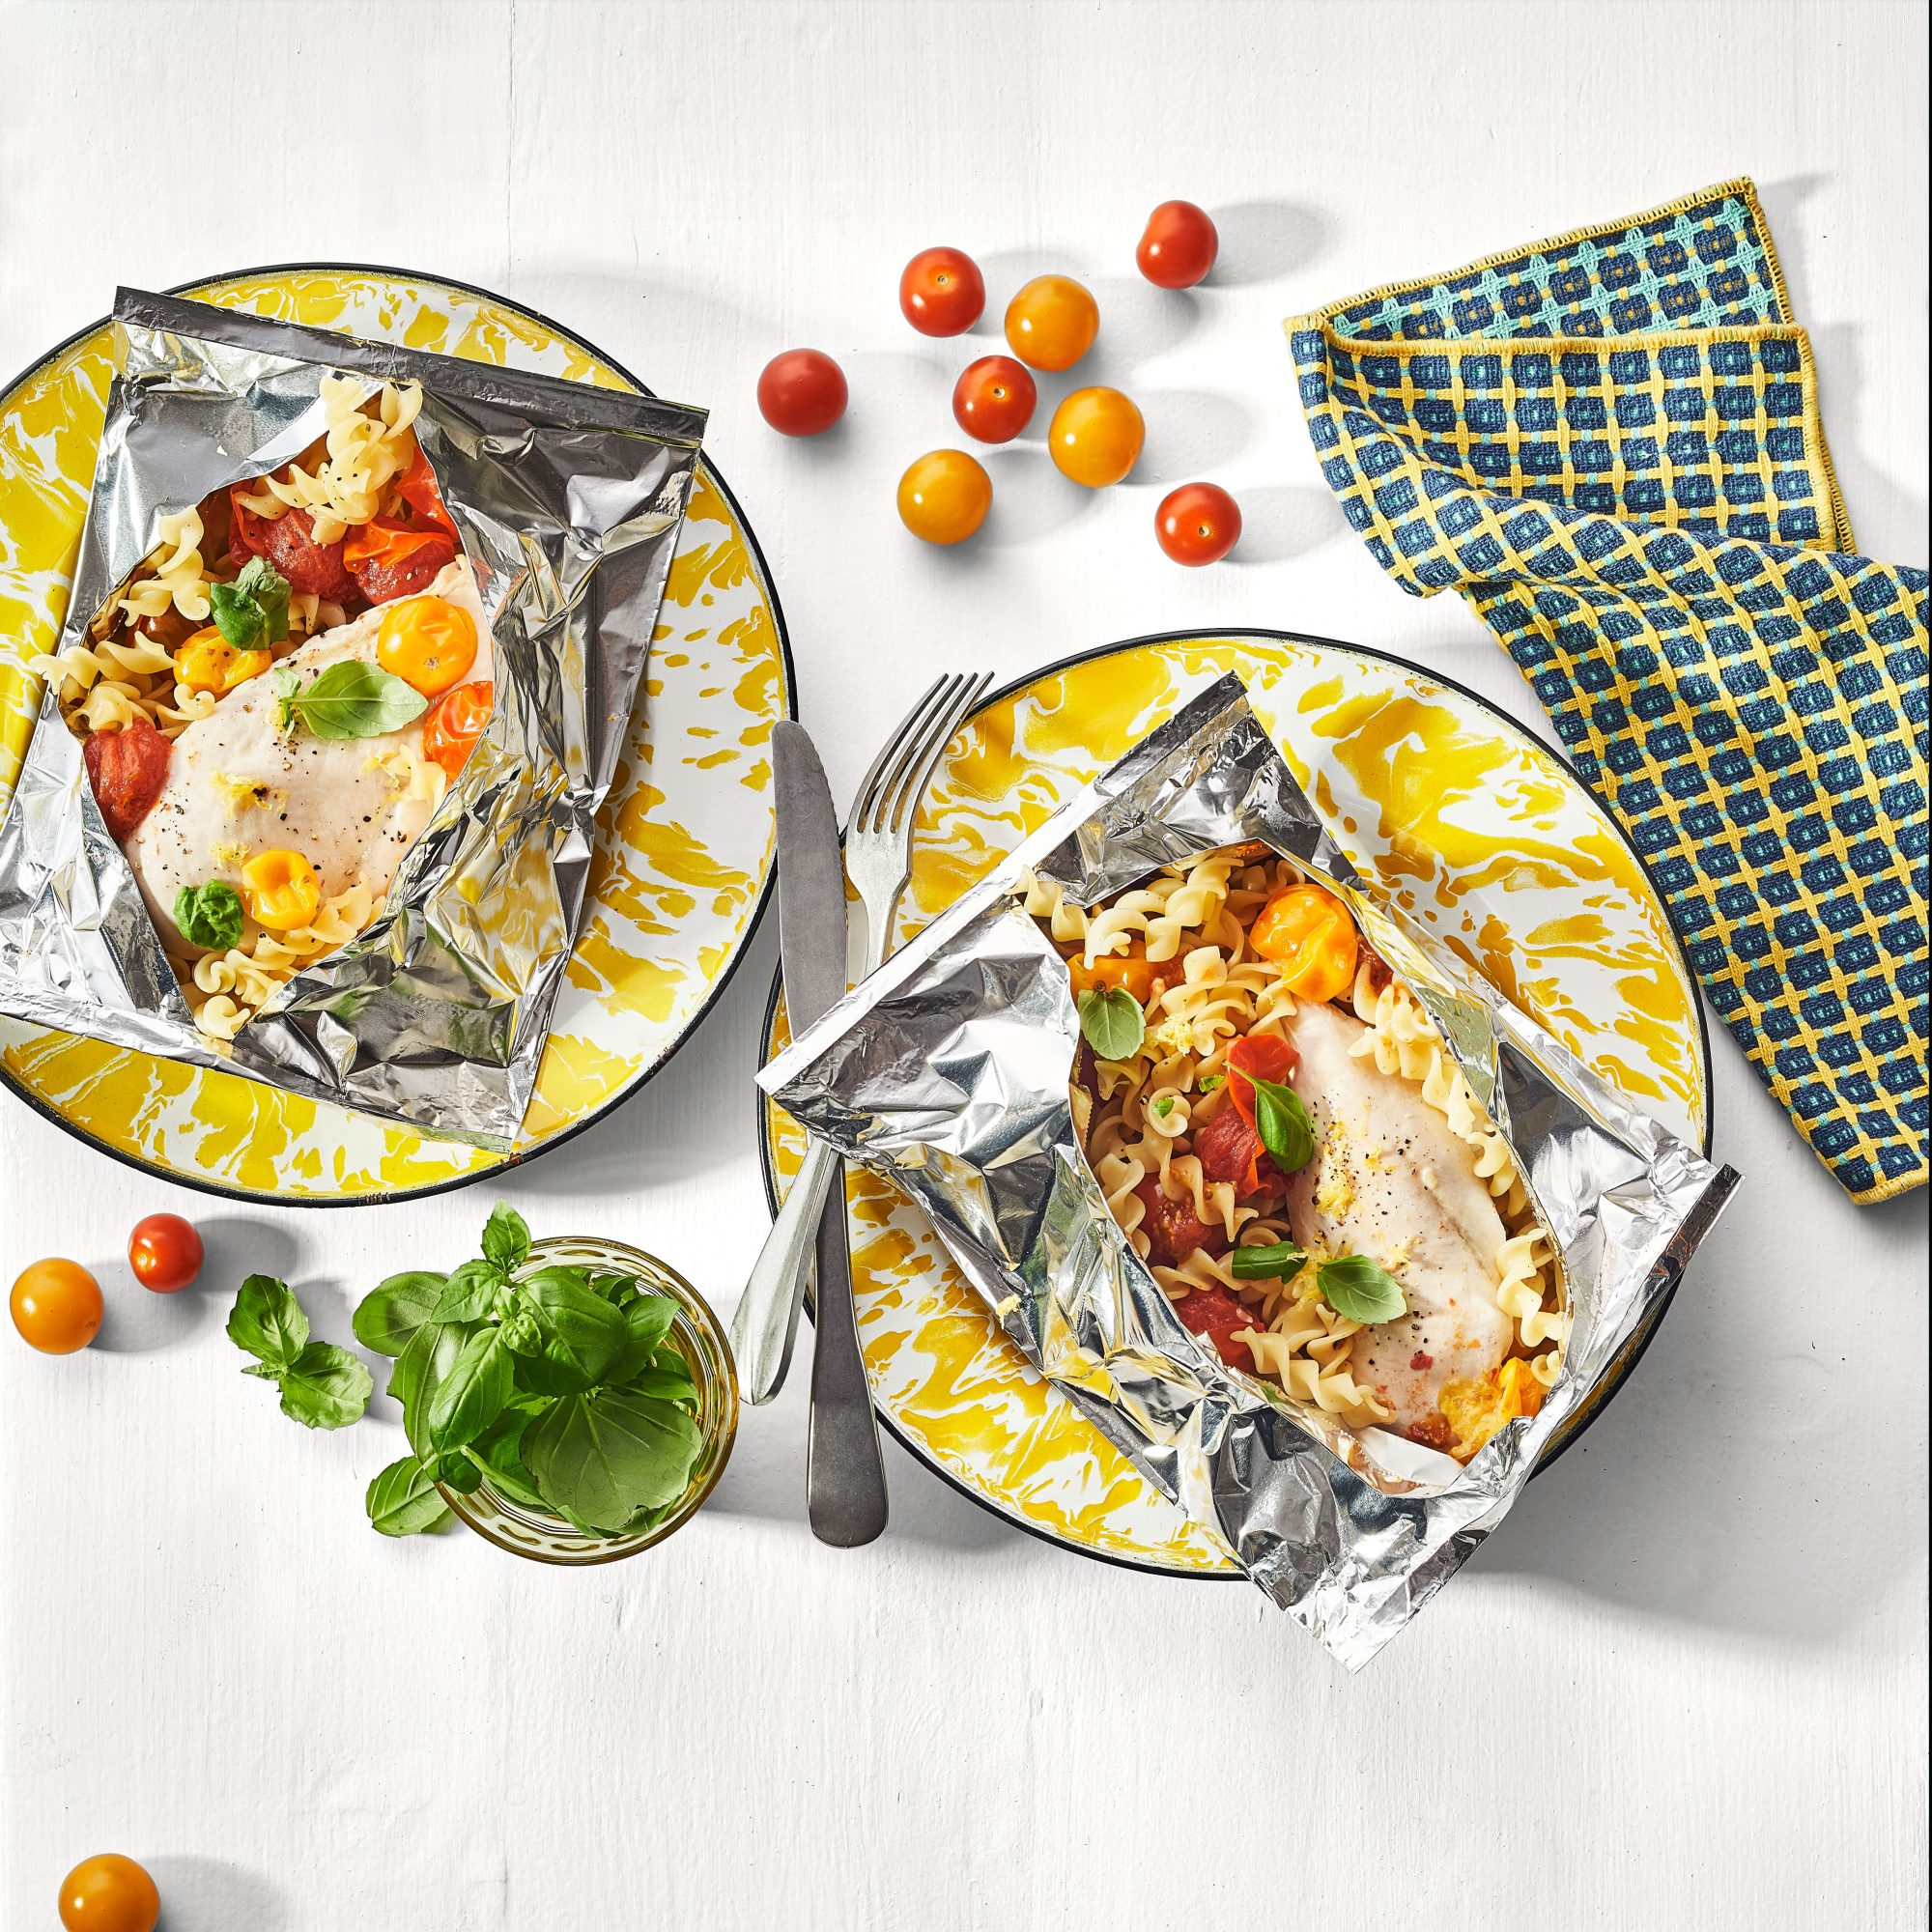 Lemon-Basil Chicken Breast Foil Packets